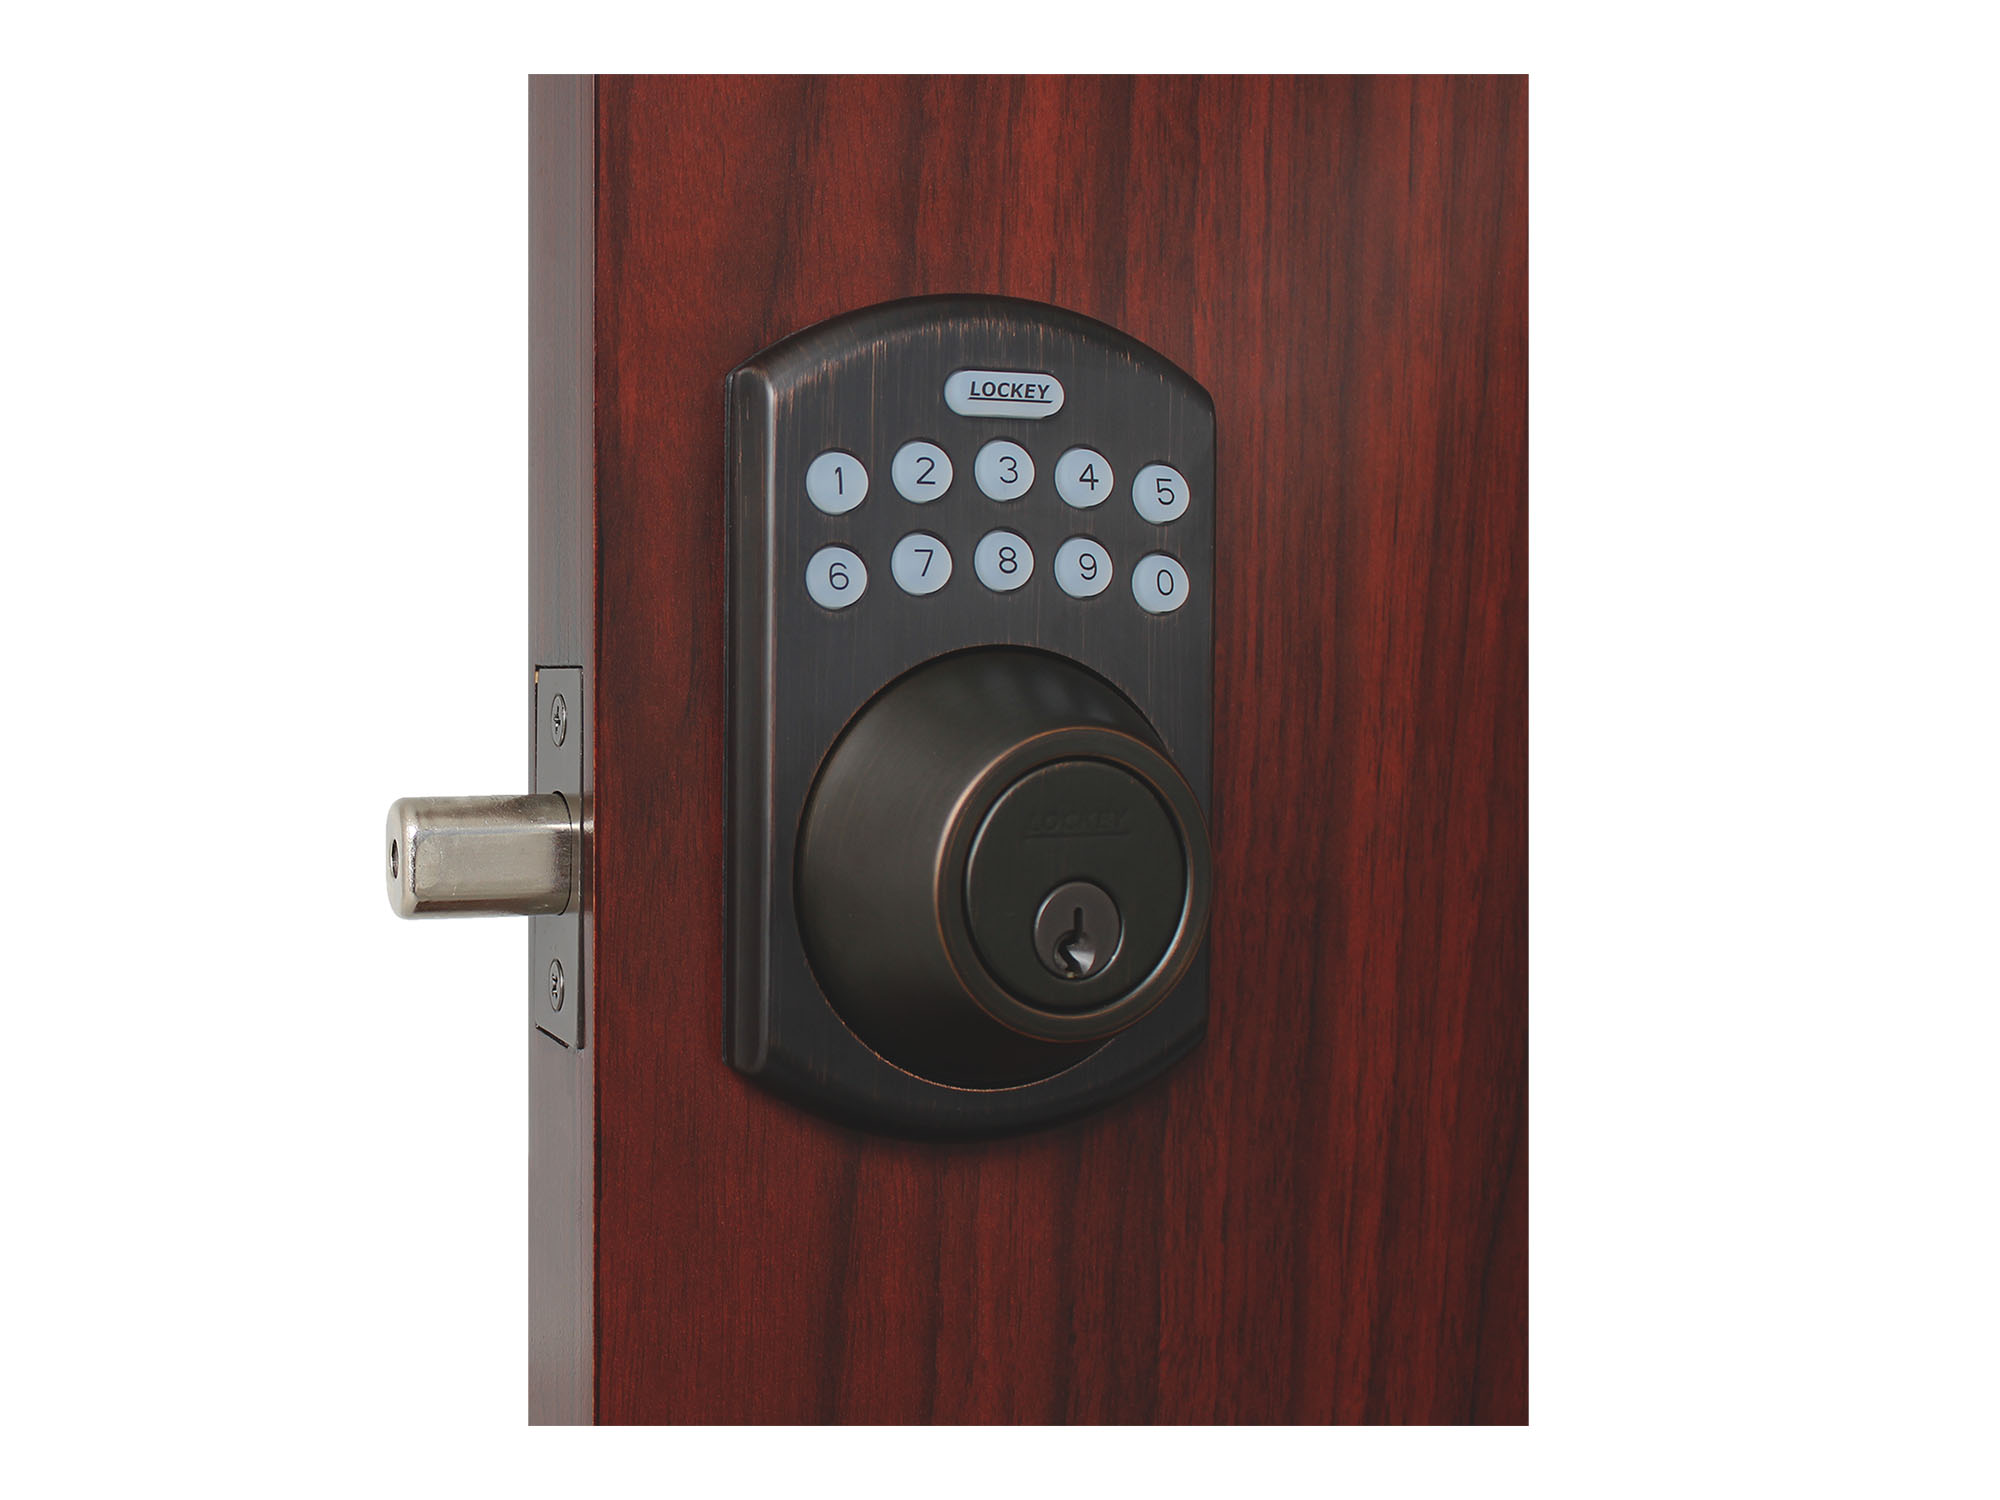 Lockey E915 Electronic Deadbolt Lock